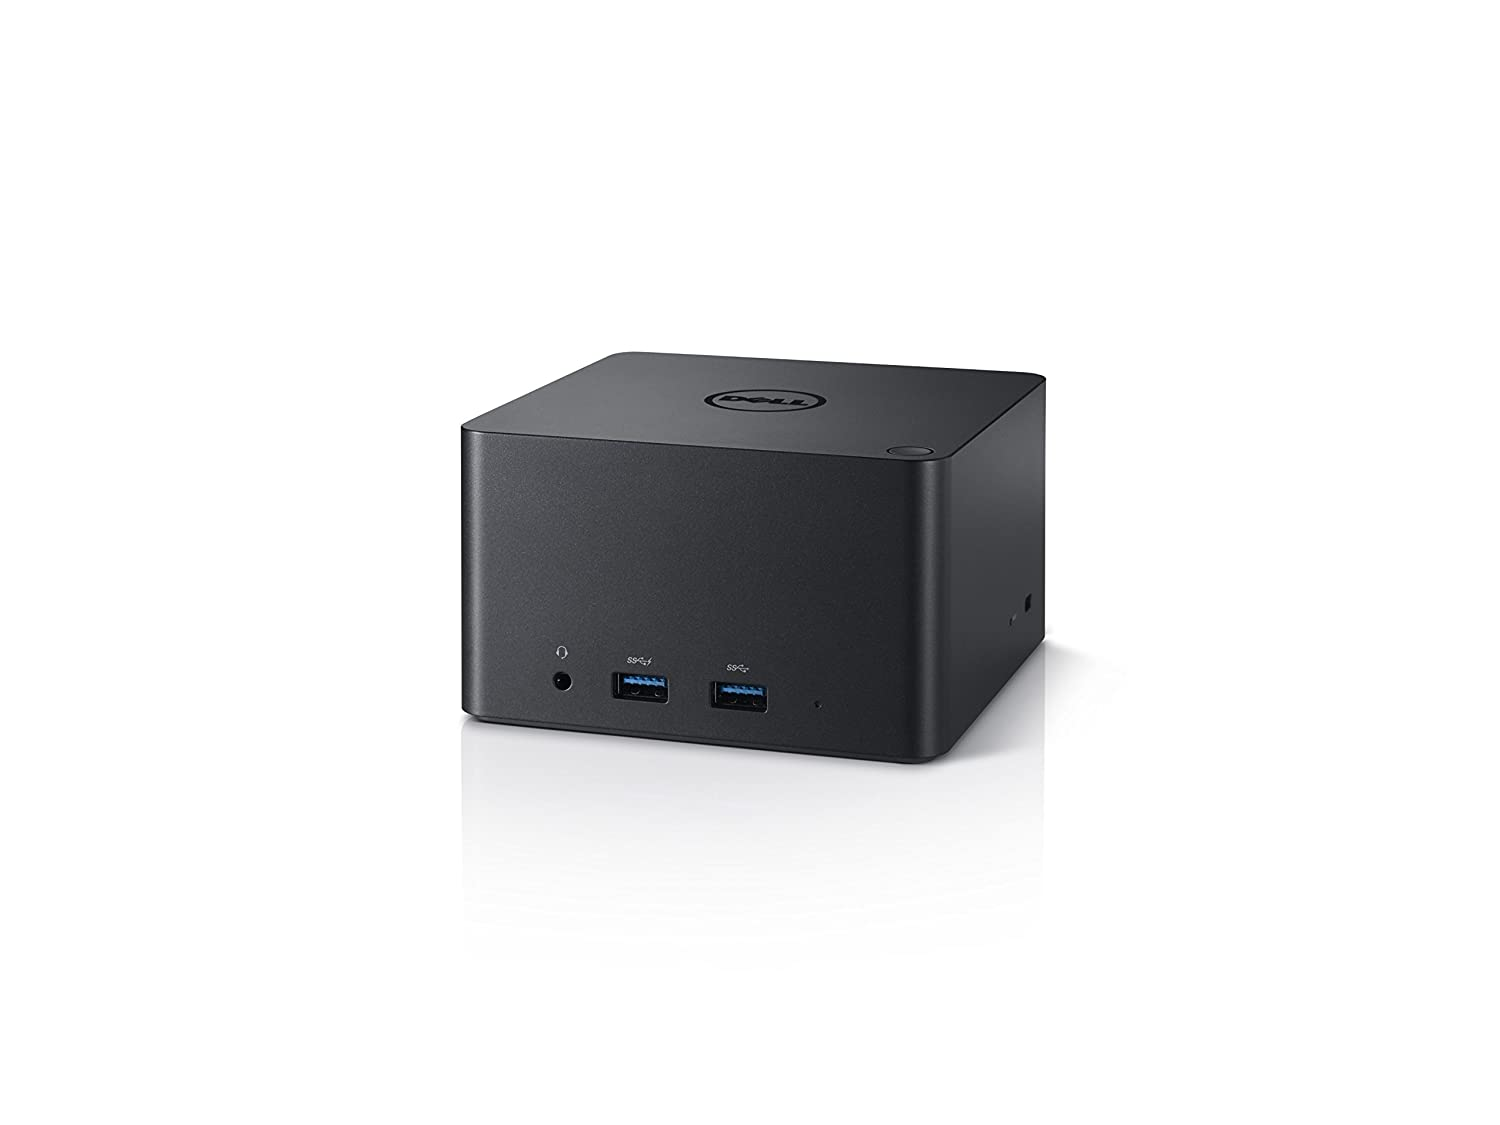 DELL 452-BBUS replicatore di porte e docking station per notebook Nero